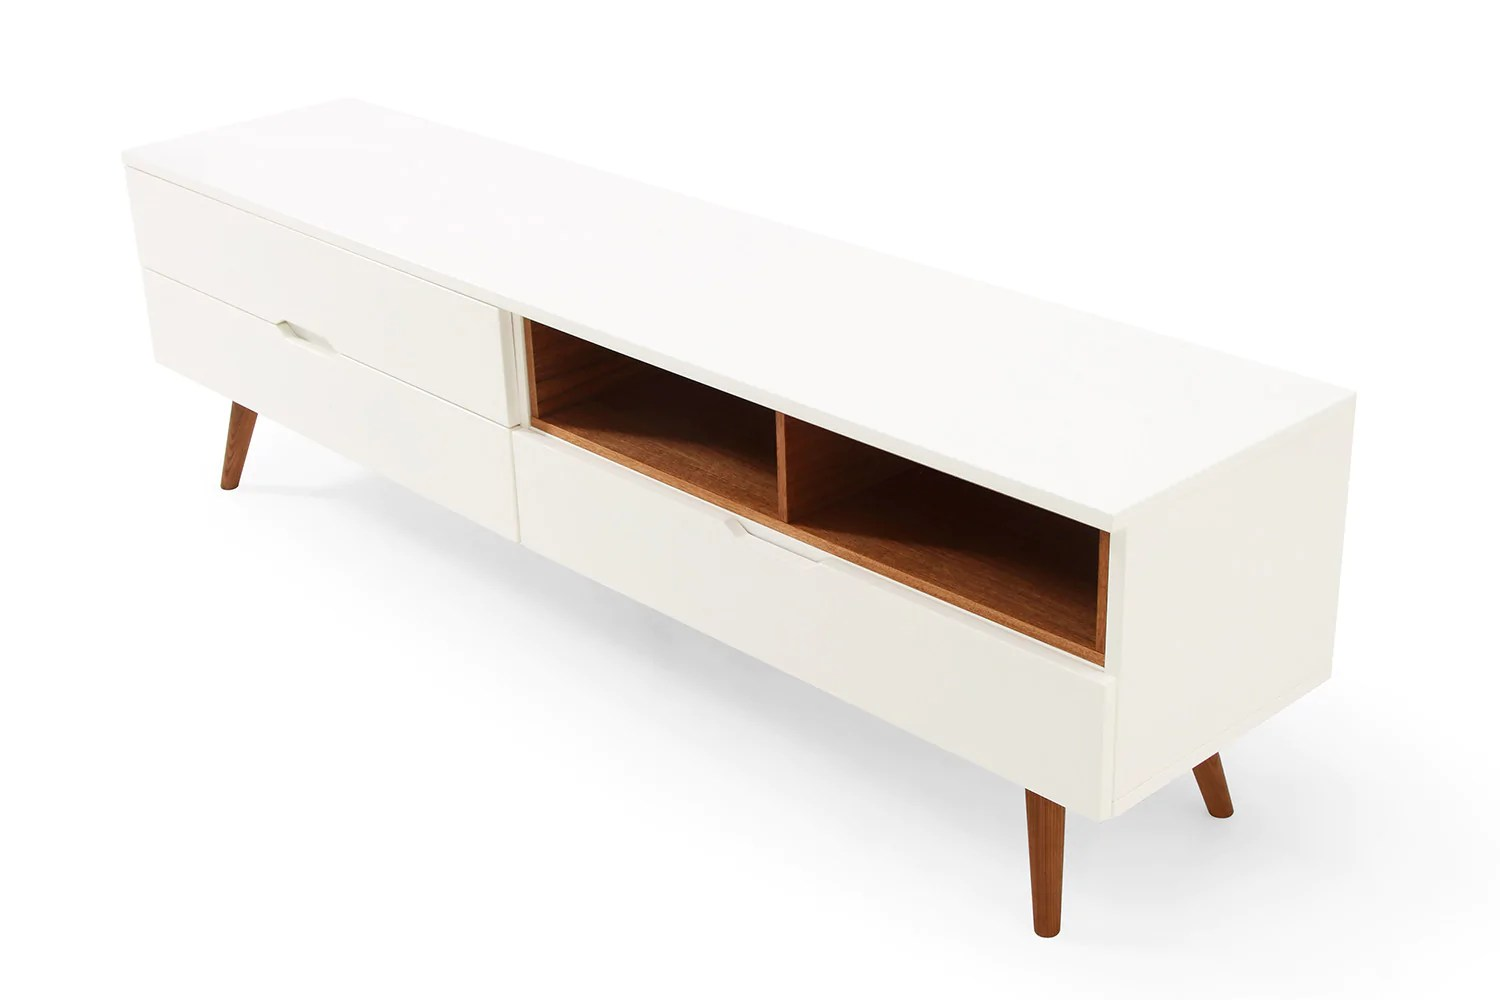 Meuble Bois Design Scandinave Meuble Tv Design Scandinave Lema Dewarens